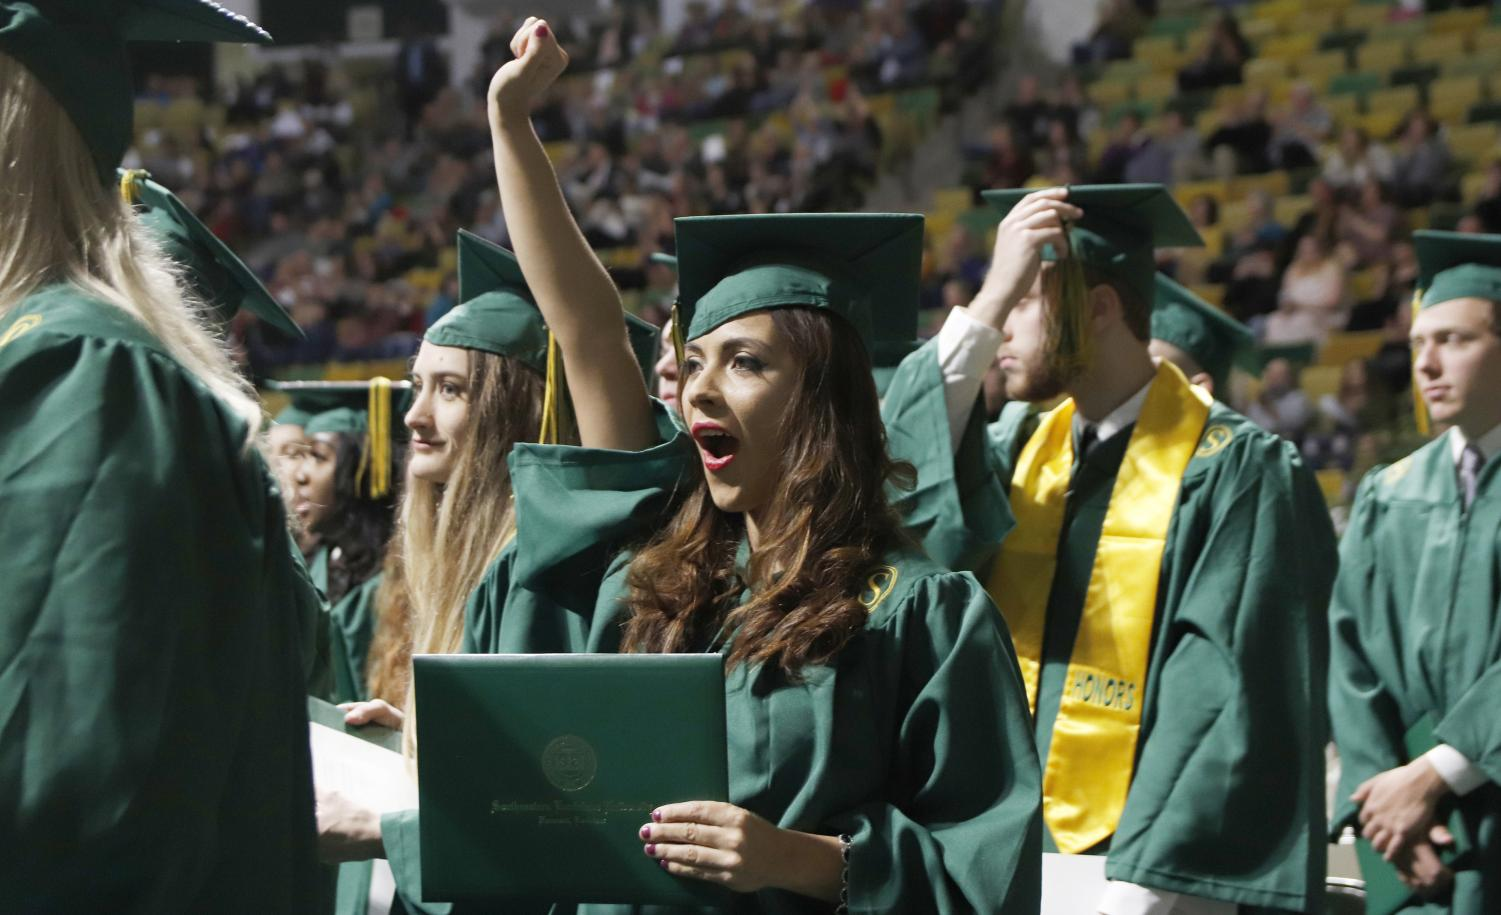 Commencement is held at the end of each spring and fall semester. Alumni have realized that life outside college has its similarities and differences to their collegiate career.